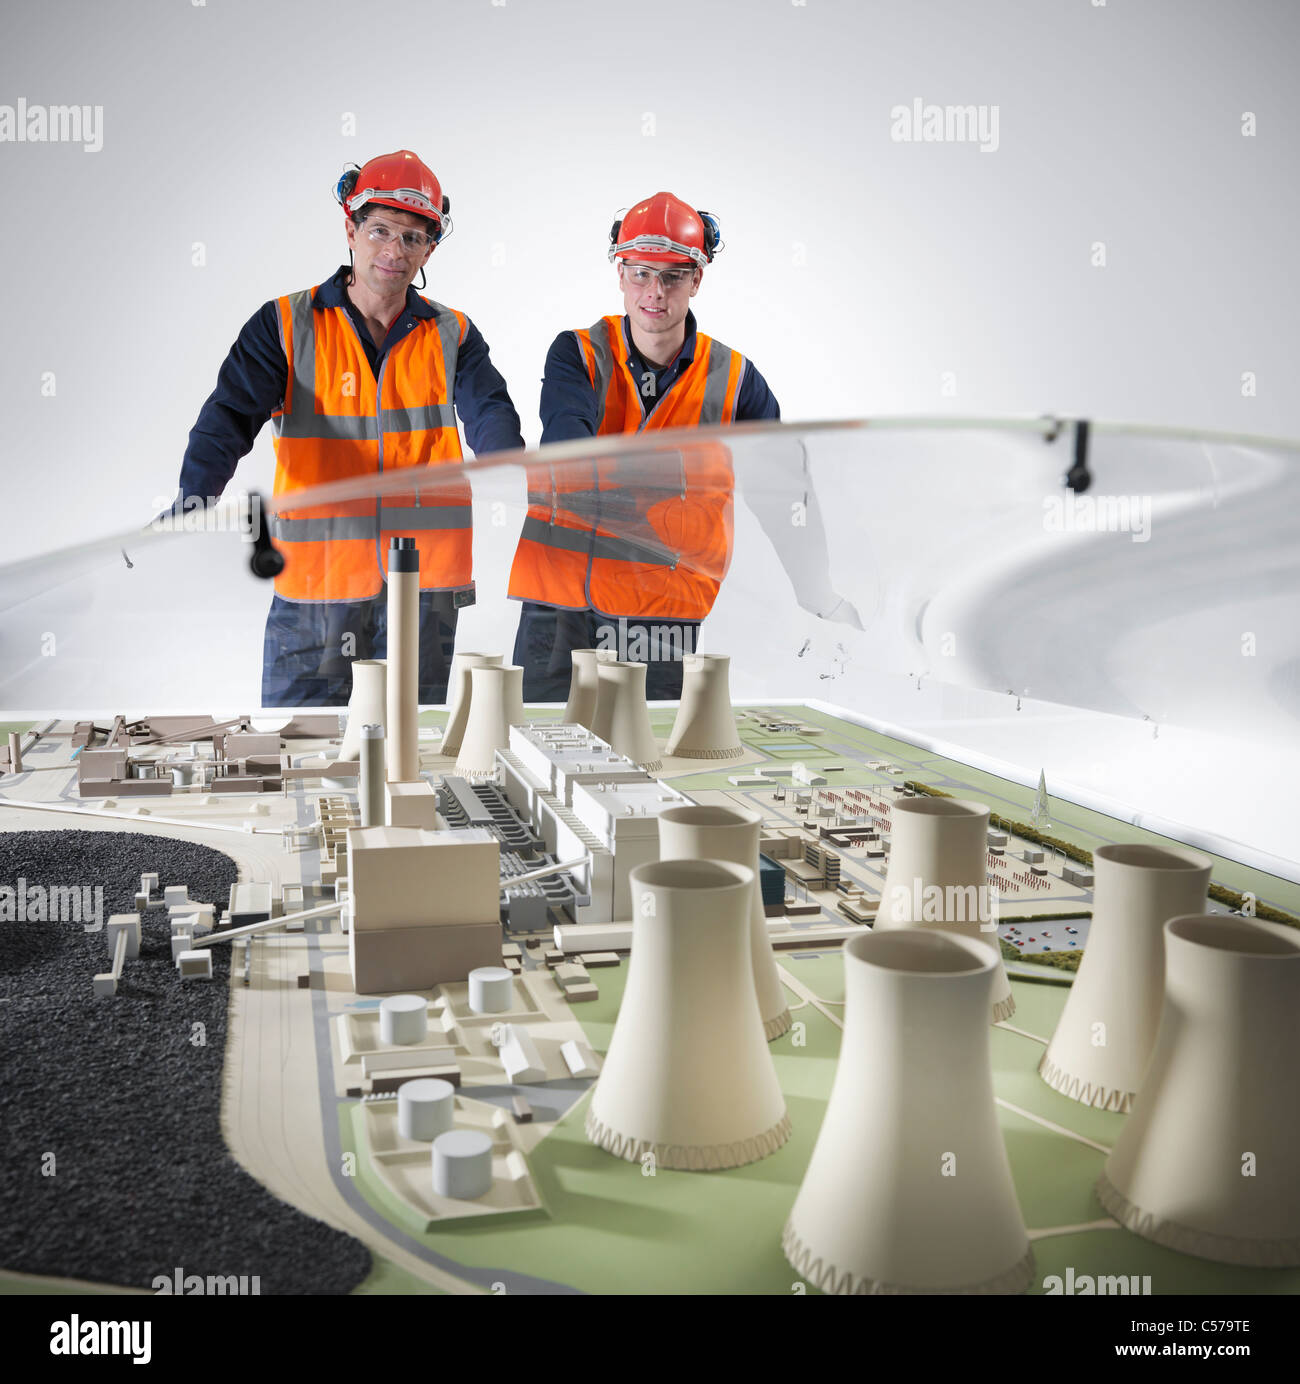 Workers examining model of power station - Stock Image